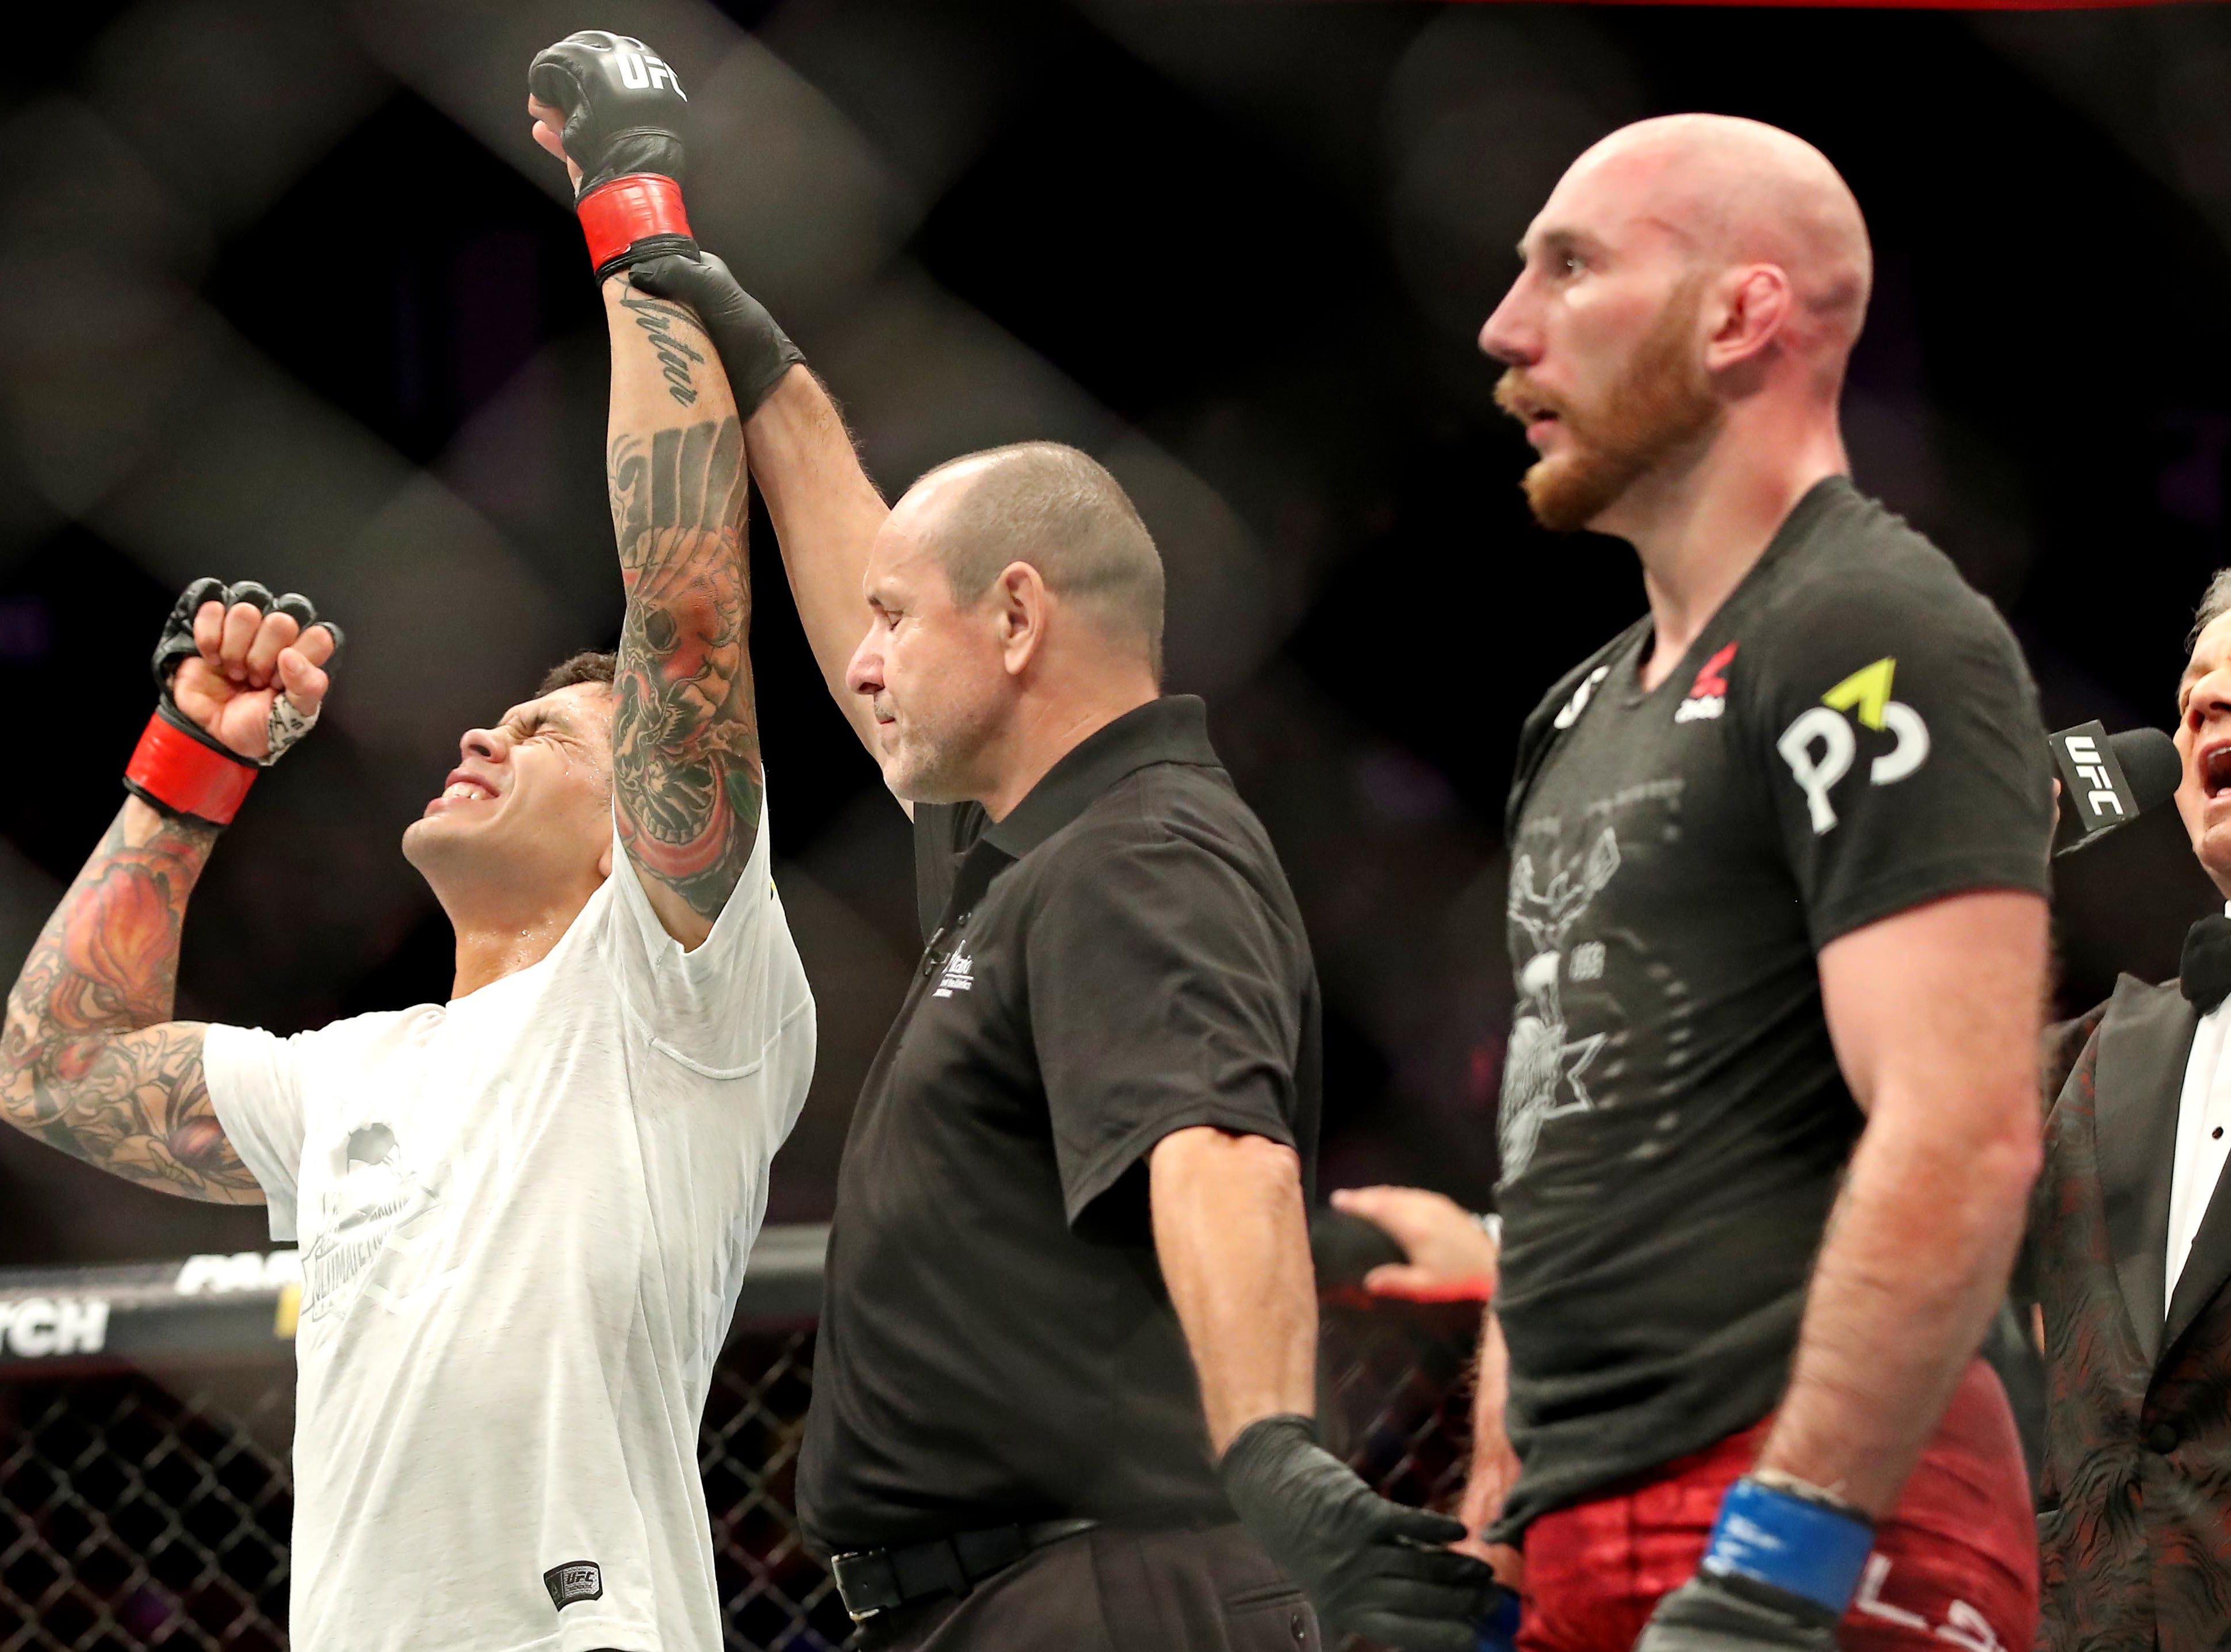 Diego Ferreira (red gloves) celebrates beating Kyle Nelson (blue gloves) during UFC 231 at Scotiabank Arena.